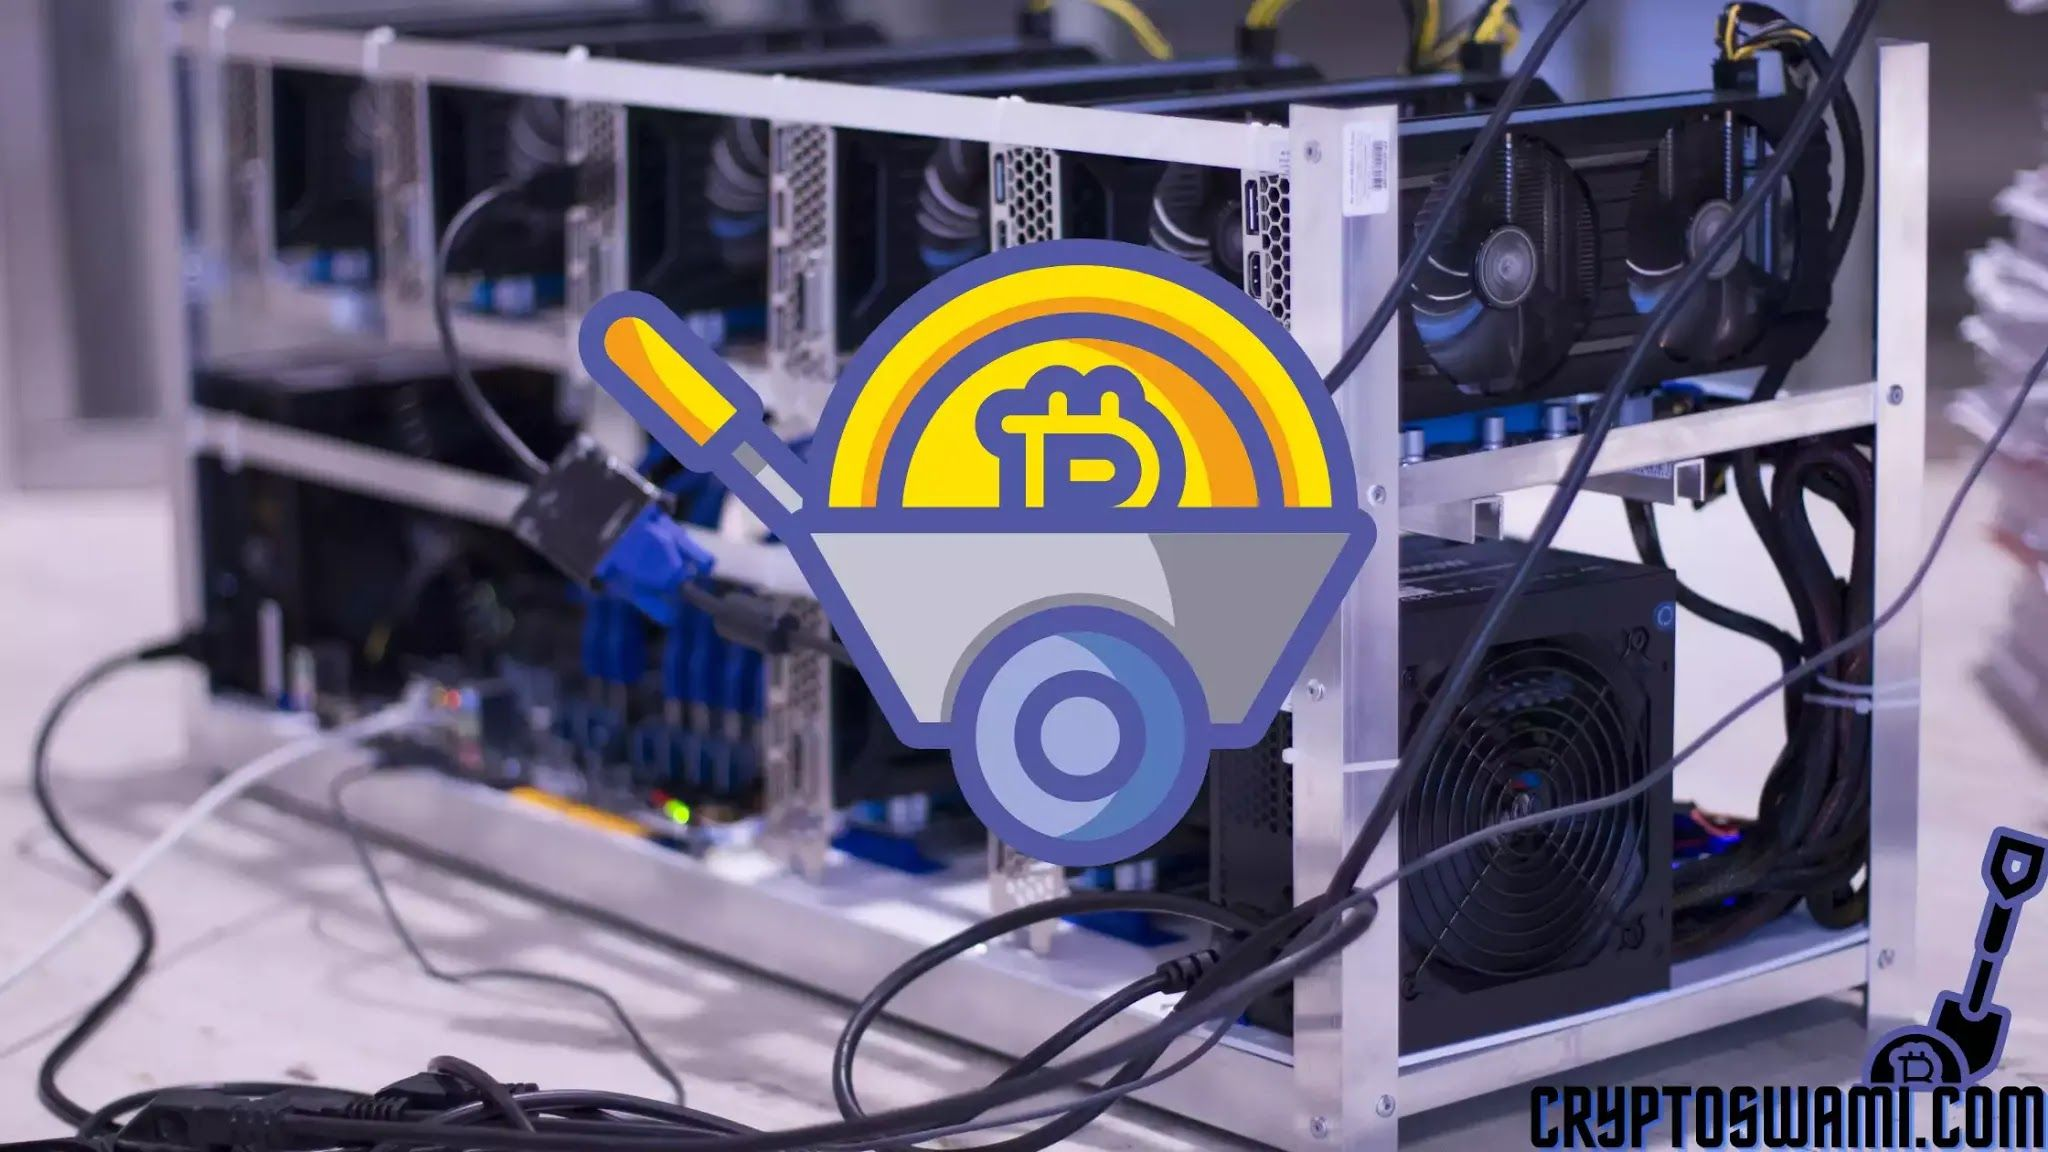 10 Crypto Mining Pools Know Everything About Crypto Mining Mining Pool Crypto Mining Bitcoin Mining Pool